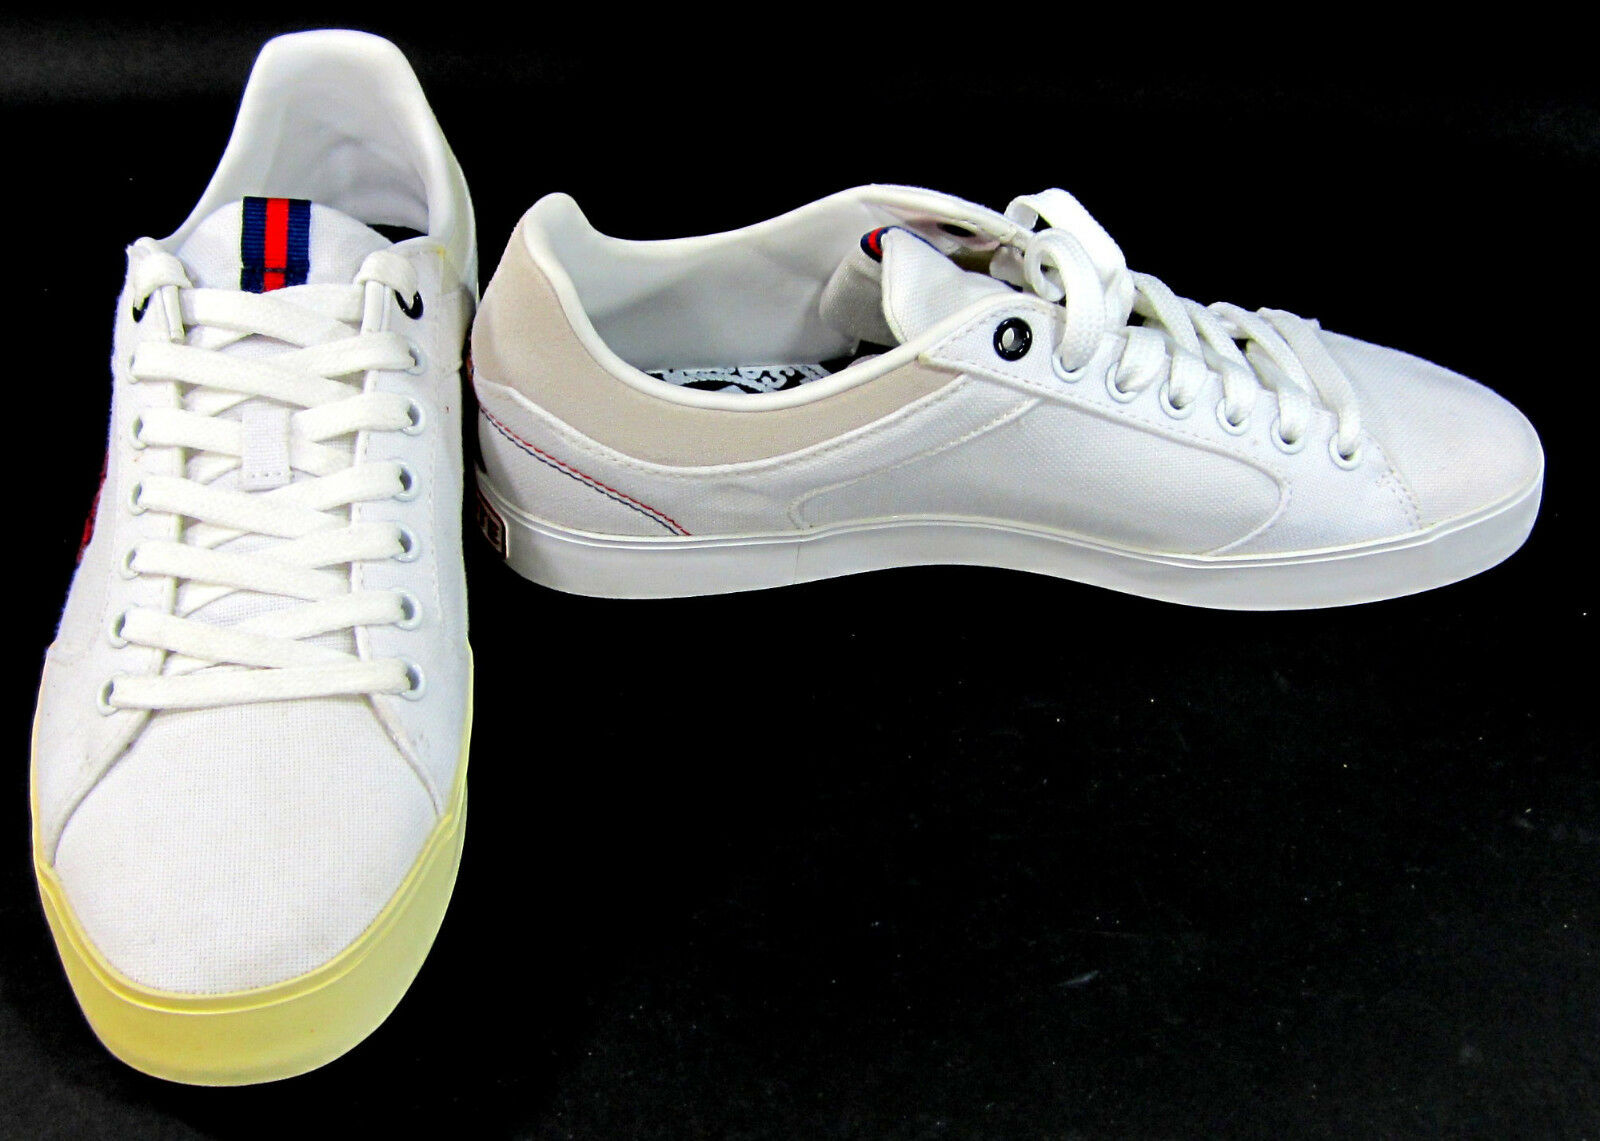 LaCoste shoes Newsome VY7 SPM White Red Sneakers Size 8